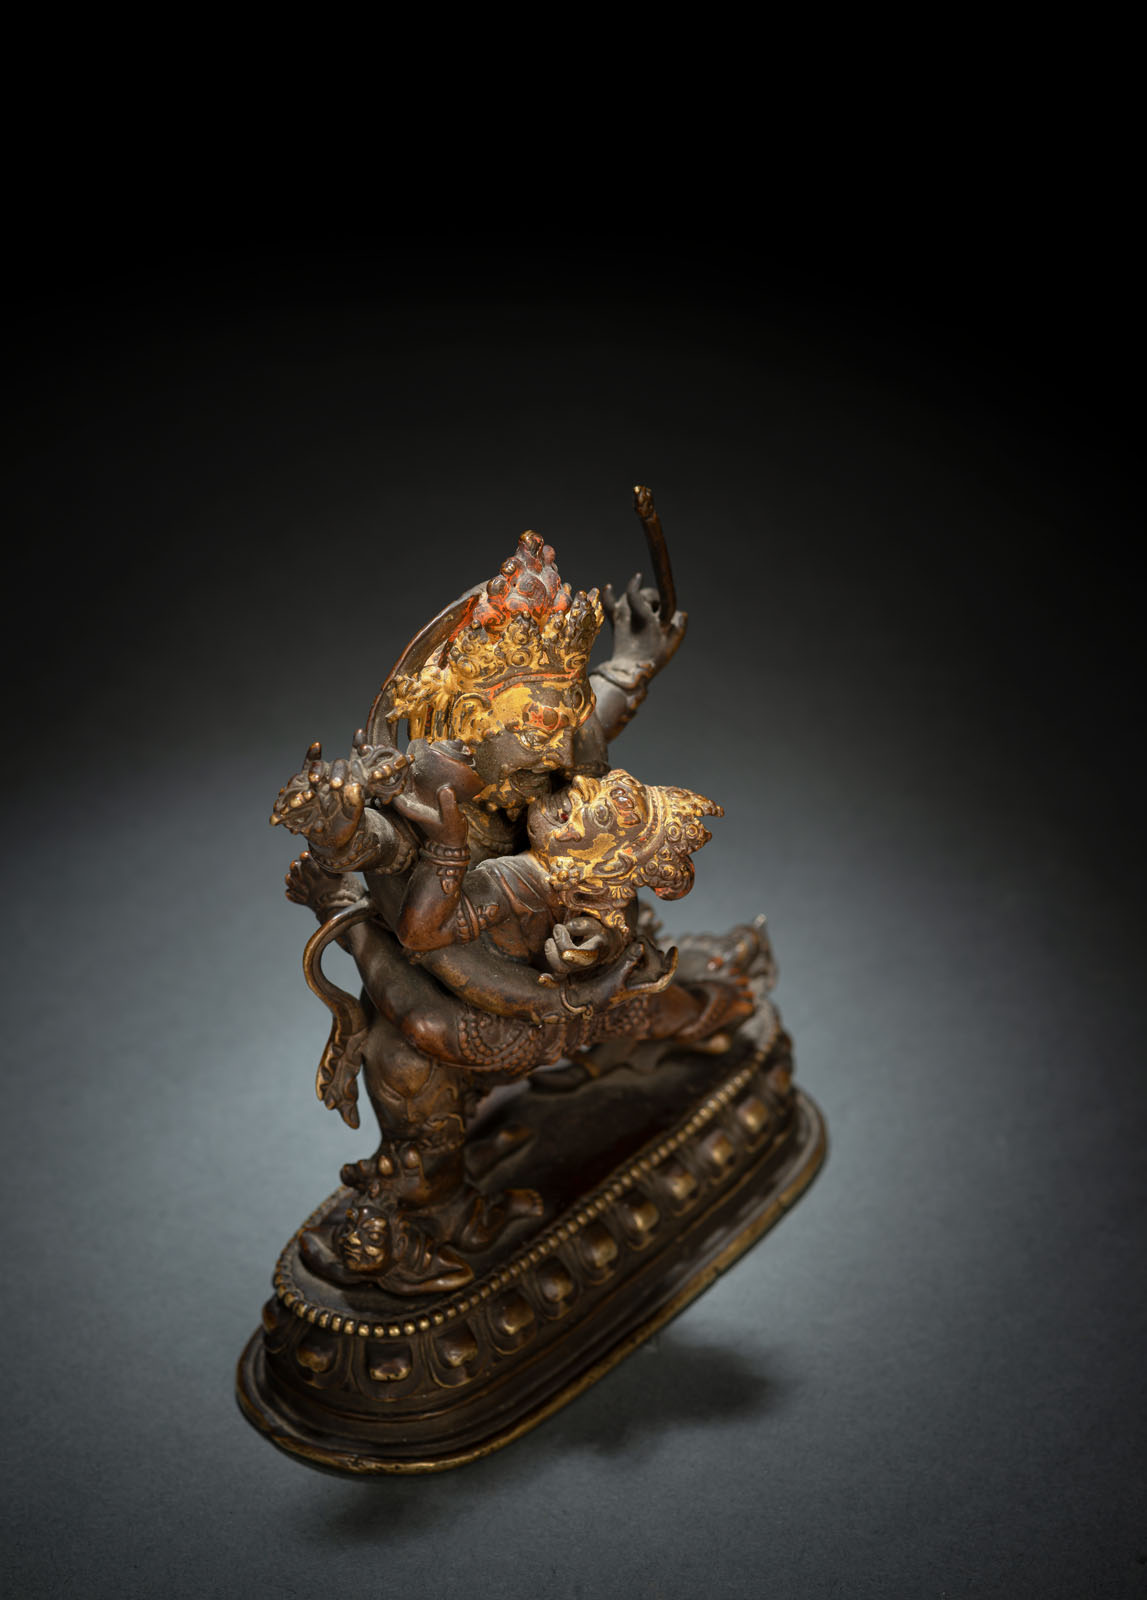 A RARE BRONZE EMANATION OF VAJRAPANI ON A LOTUS - Image 3 of 10